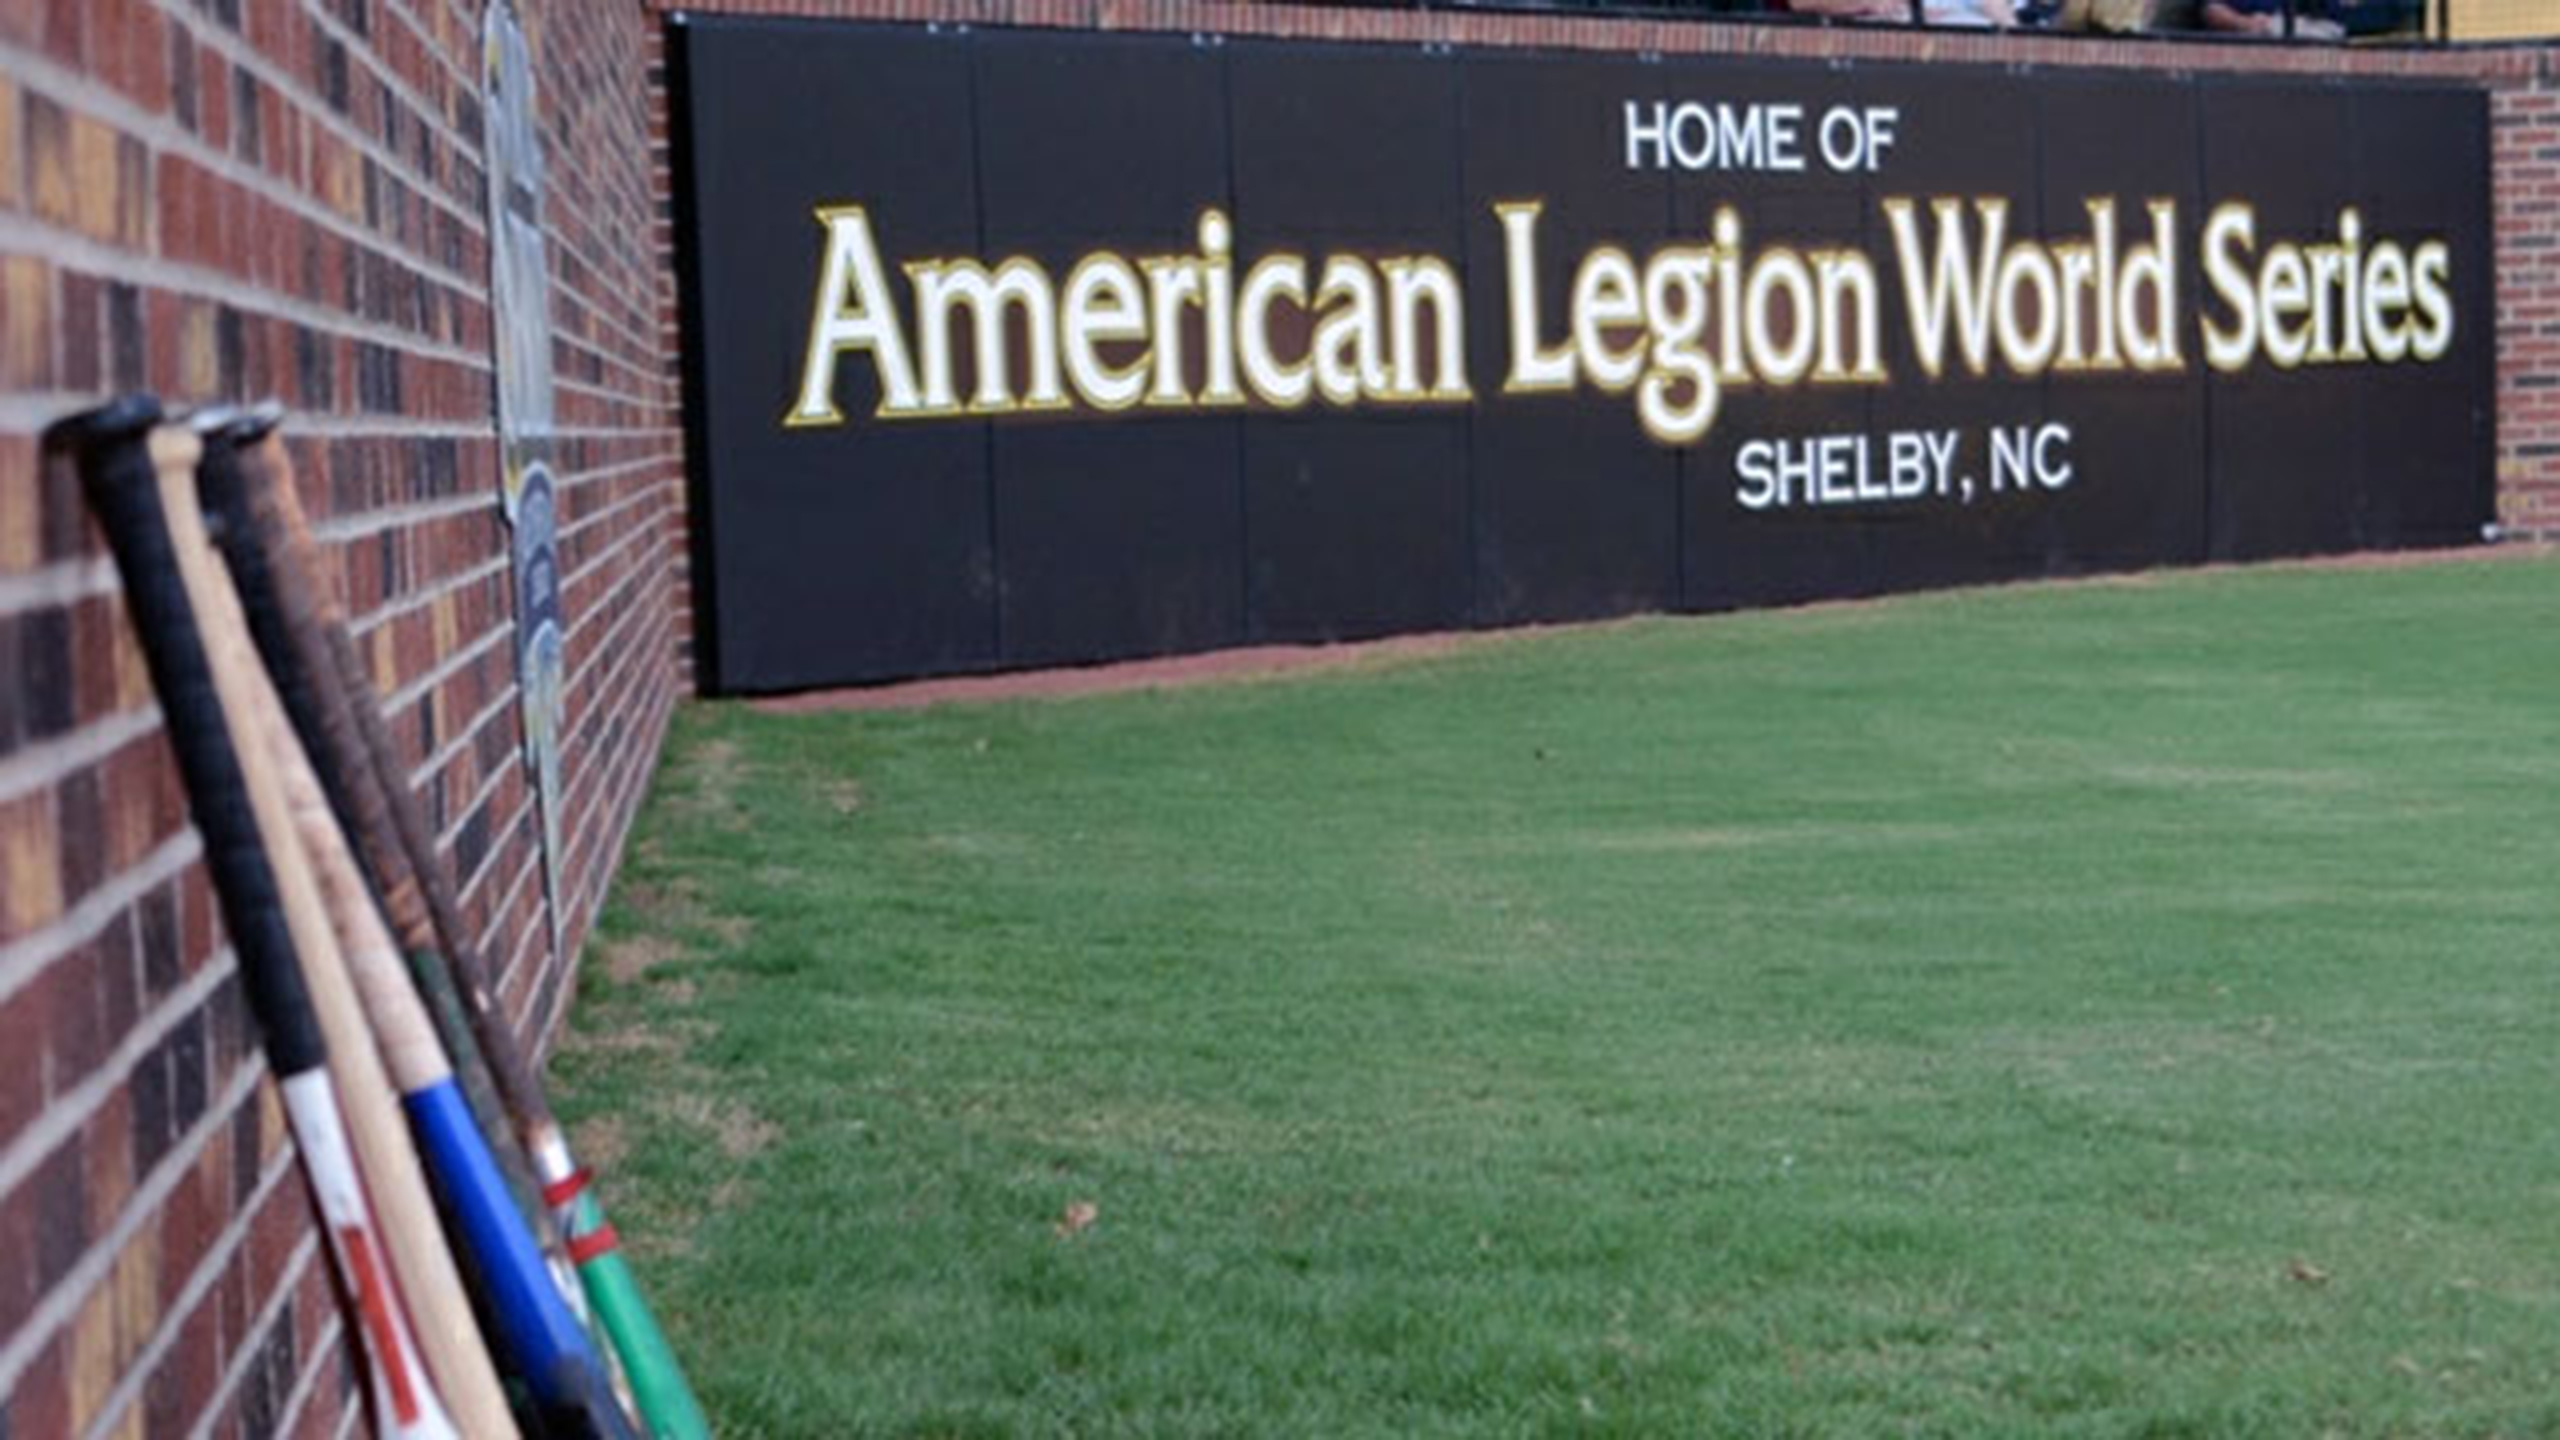 Southeast vs. Western (American Legion) (re-air)